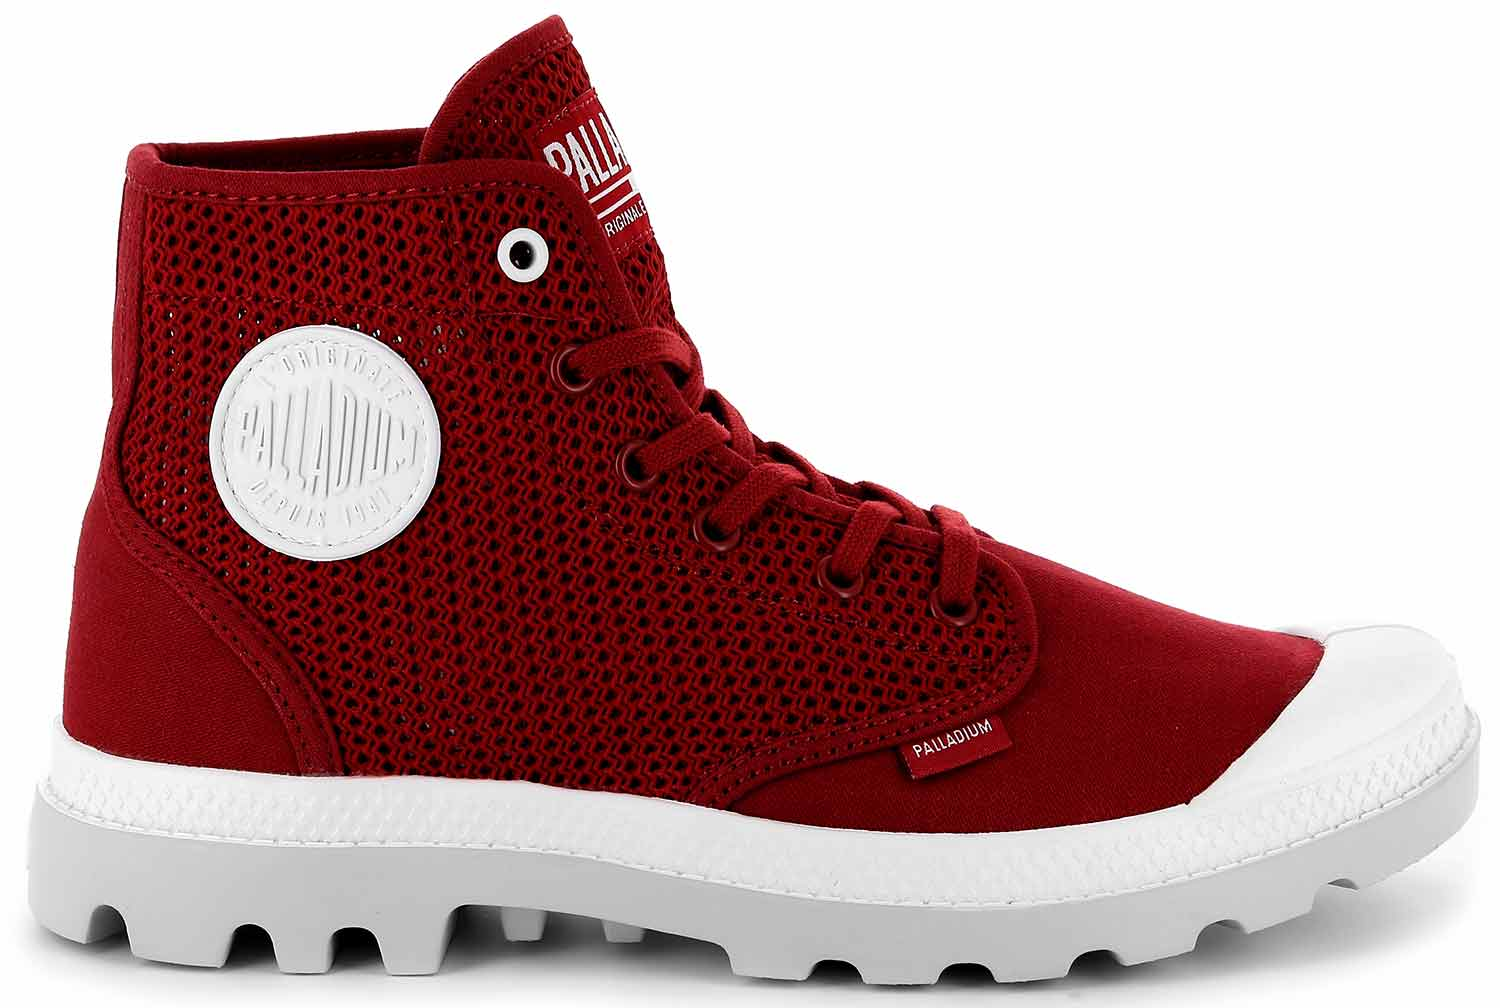 607 Loisir Chaussures Rouge Pampa M 75751 Piment Bottes Palladium vtXnwt